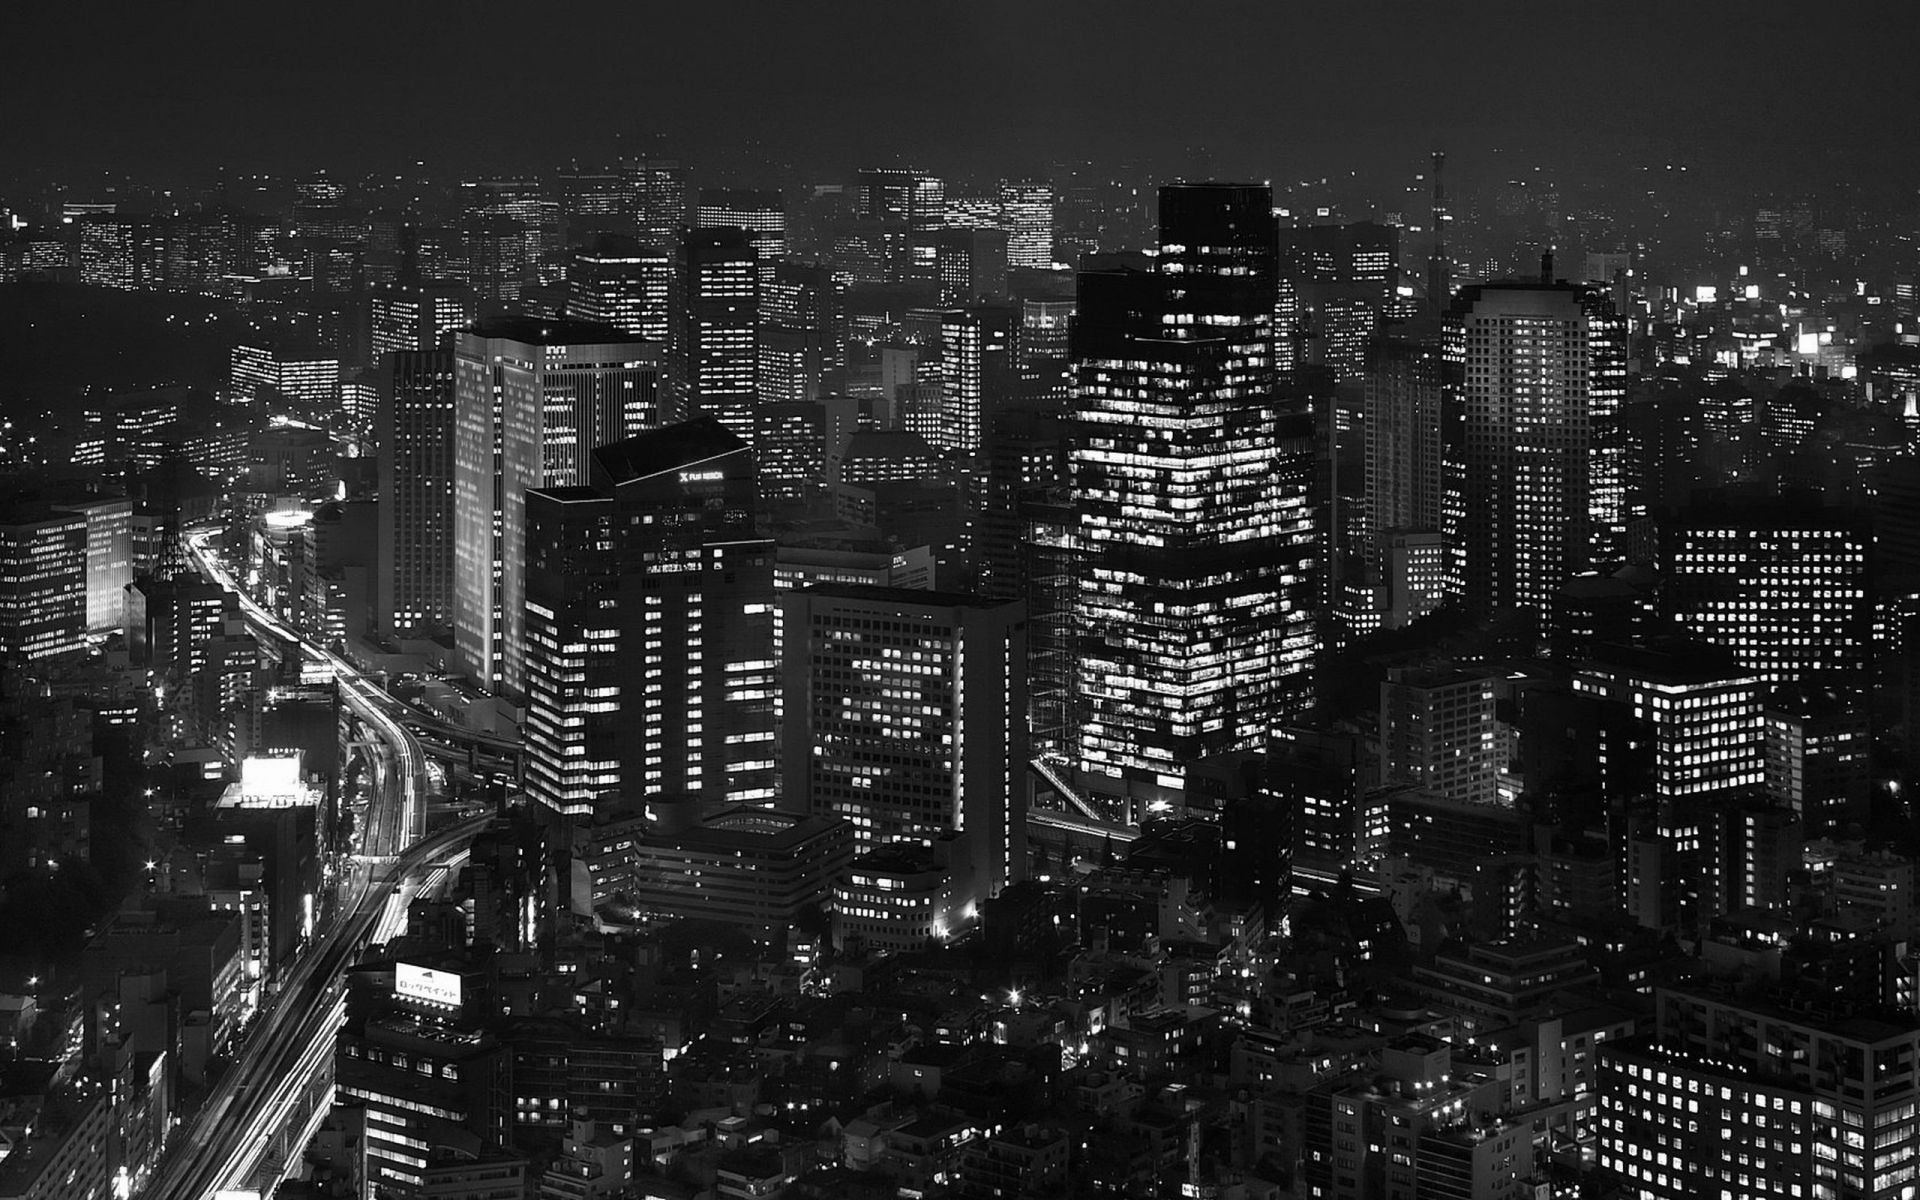 Tokyo Background Black And White Black And White City Landscape Wallpaper Black And White